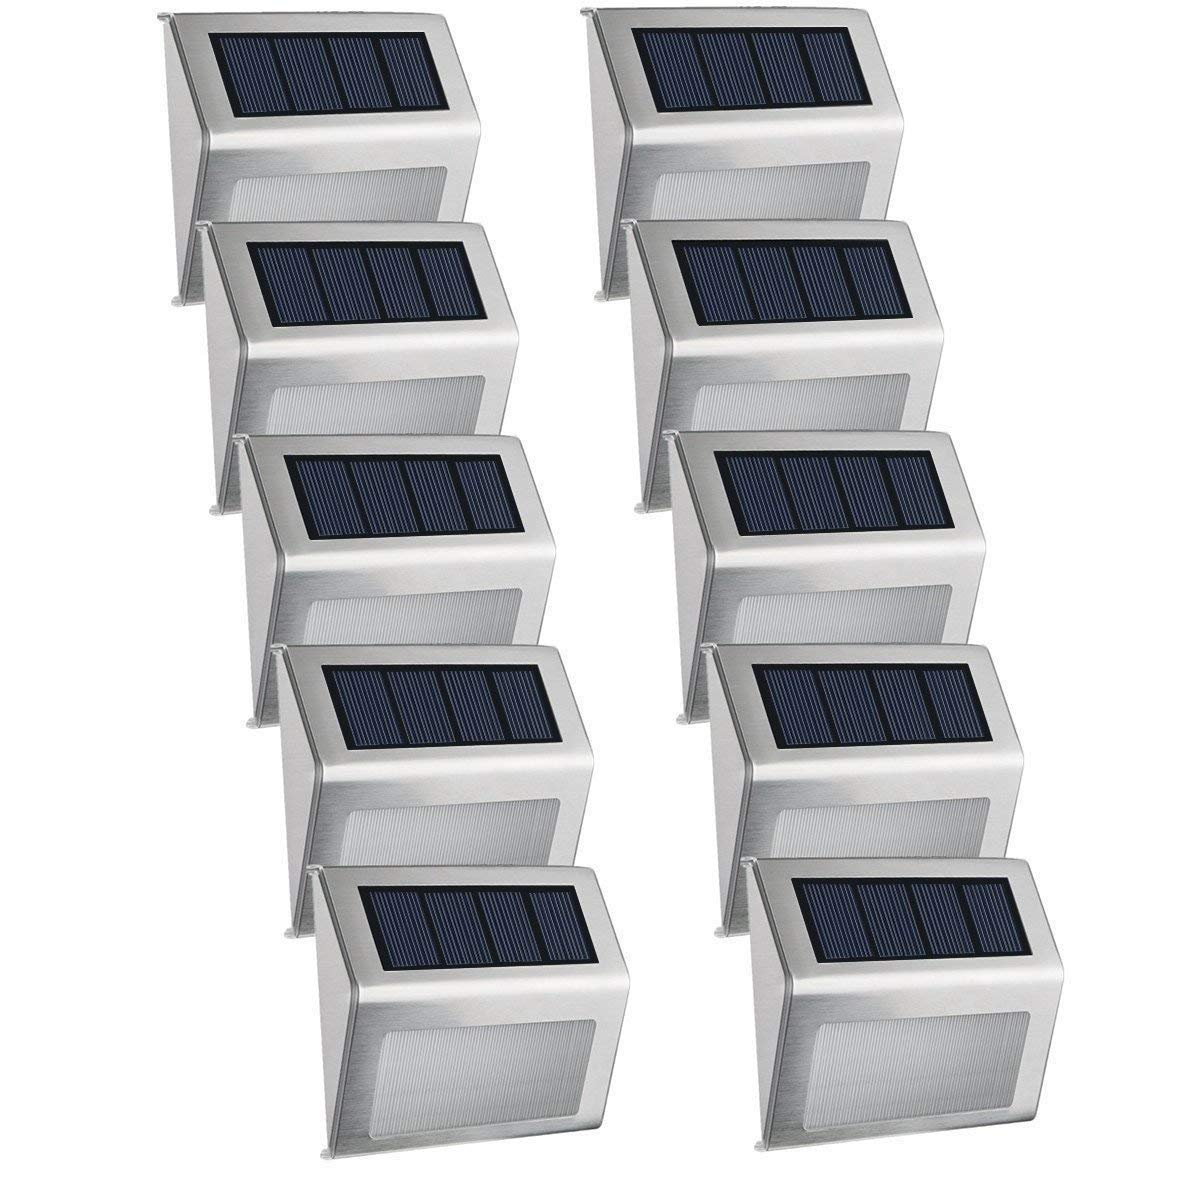 Solar Powered Deck Lights, EASTERNSTAR 4 LED Outdoor Stainless Steel Waterproof Step Lights Wireless White Lighting for Fence,Path, Patio, Stair-10 Pack by EASTERNSTAR